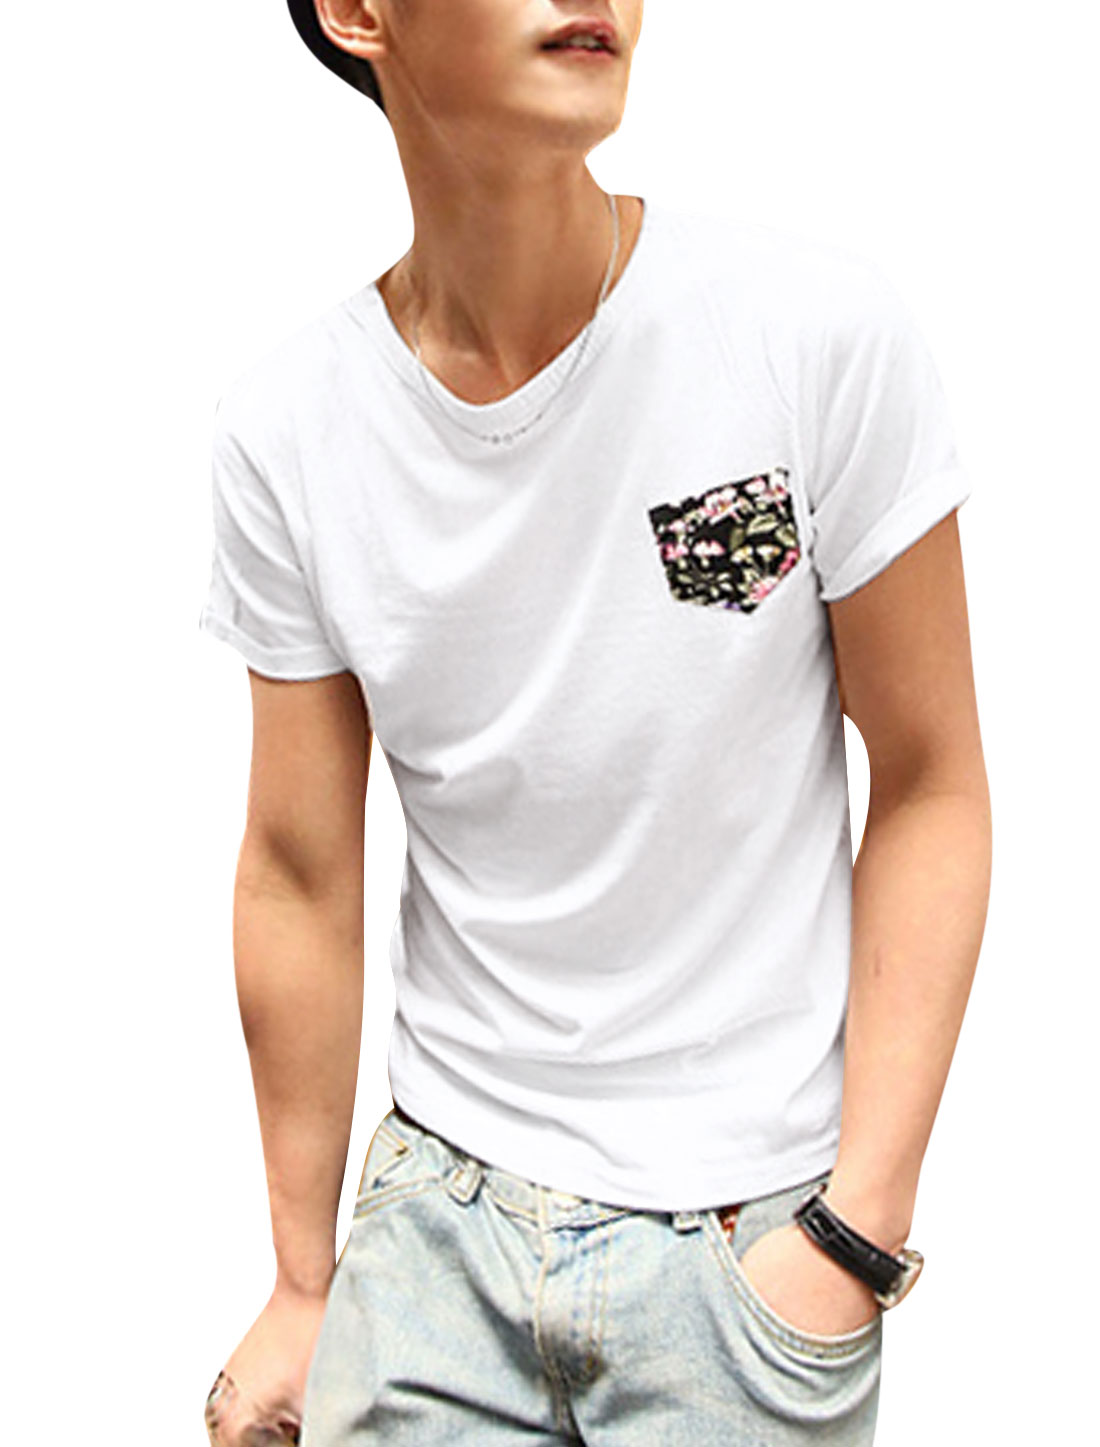 Men One Chest Pocket Flower Skull Applique Slipover T-Shirt White M